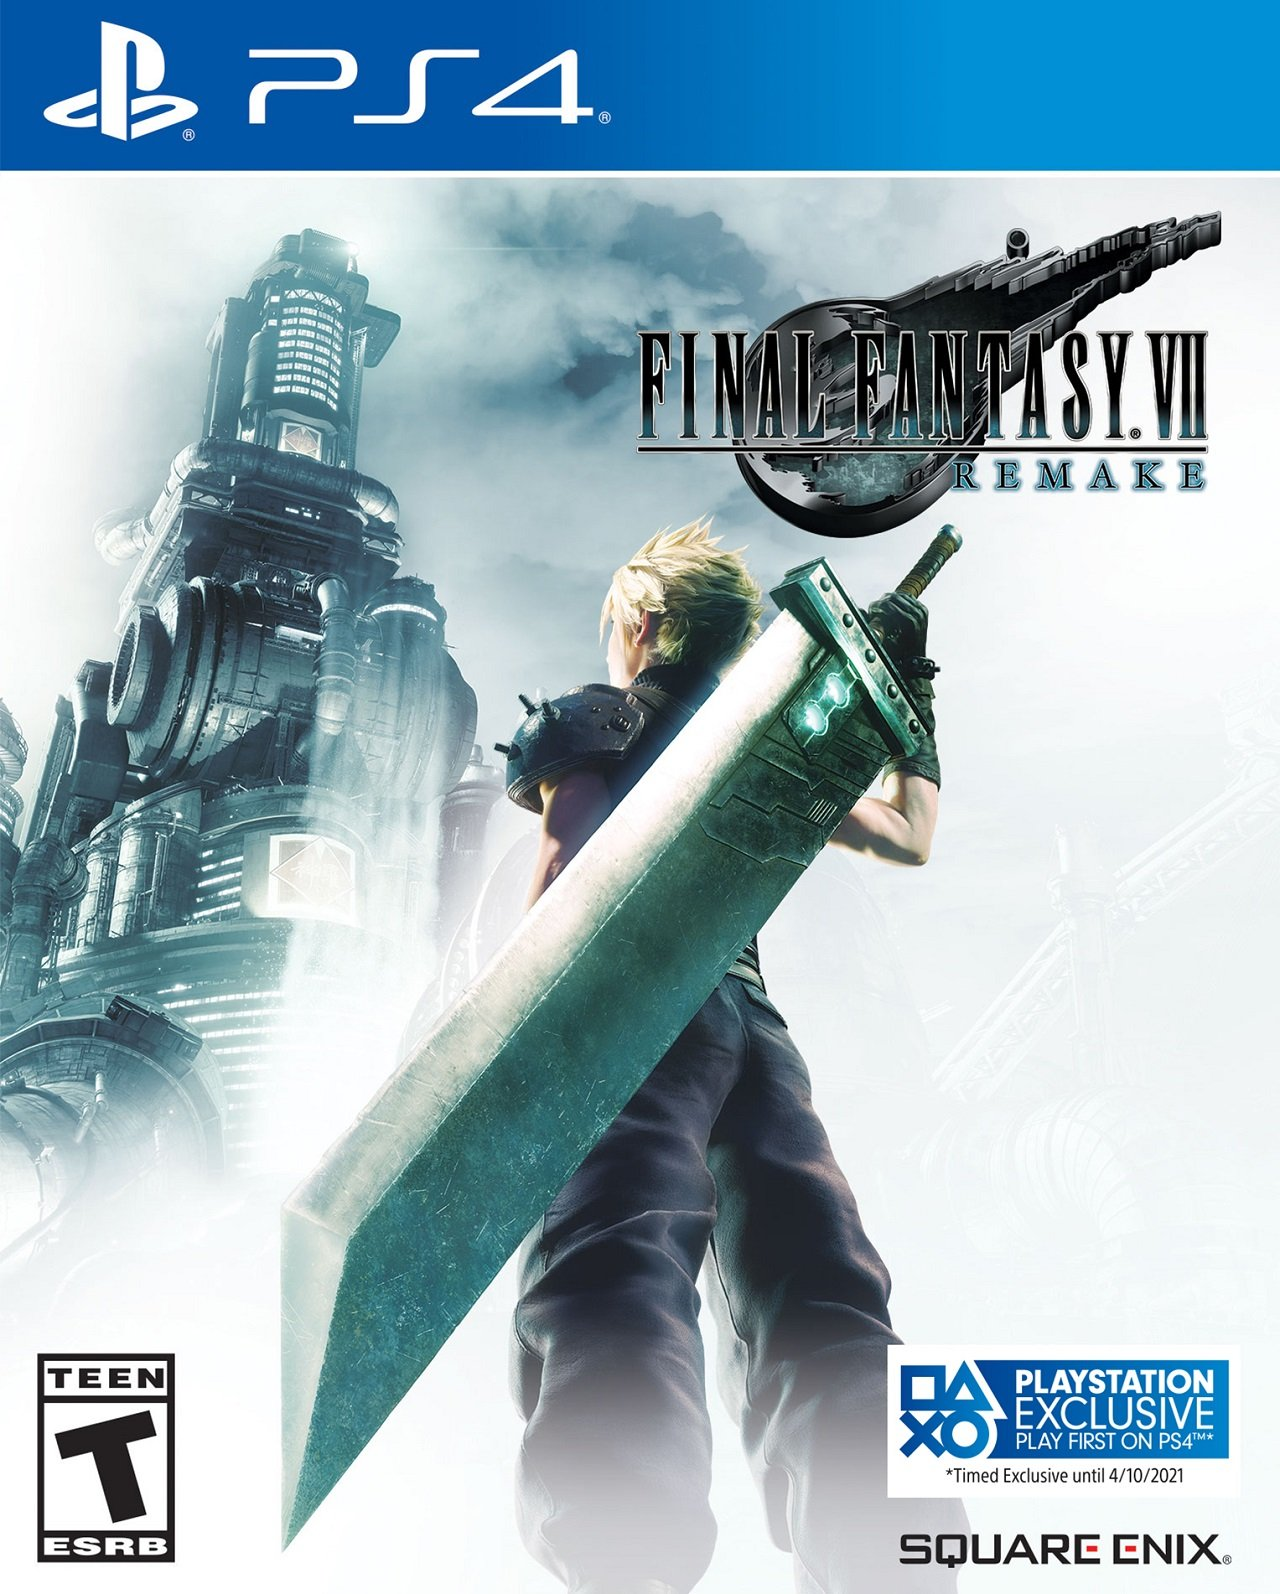 As can be seen in the marker on the lower right corner of the new box art, the PS4 delay of Final Fantasy 7 Remake has also extended its exclusivity to April 10.